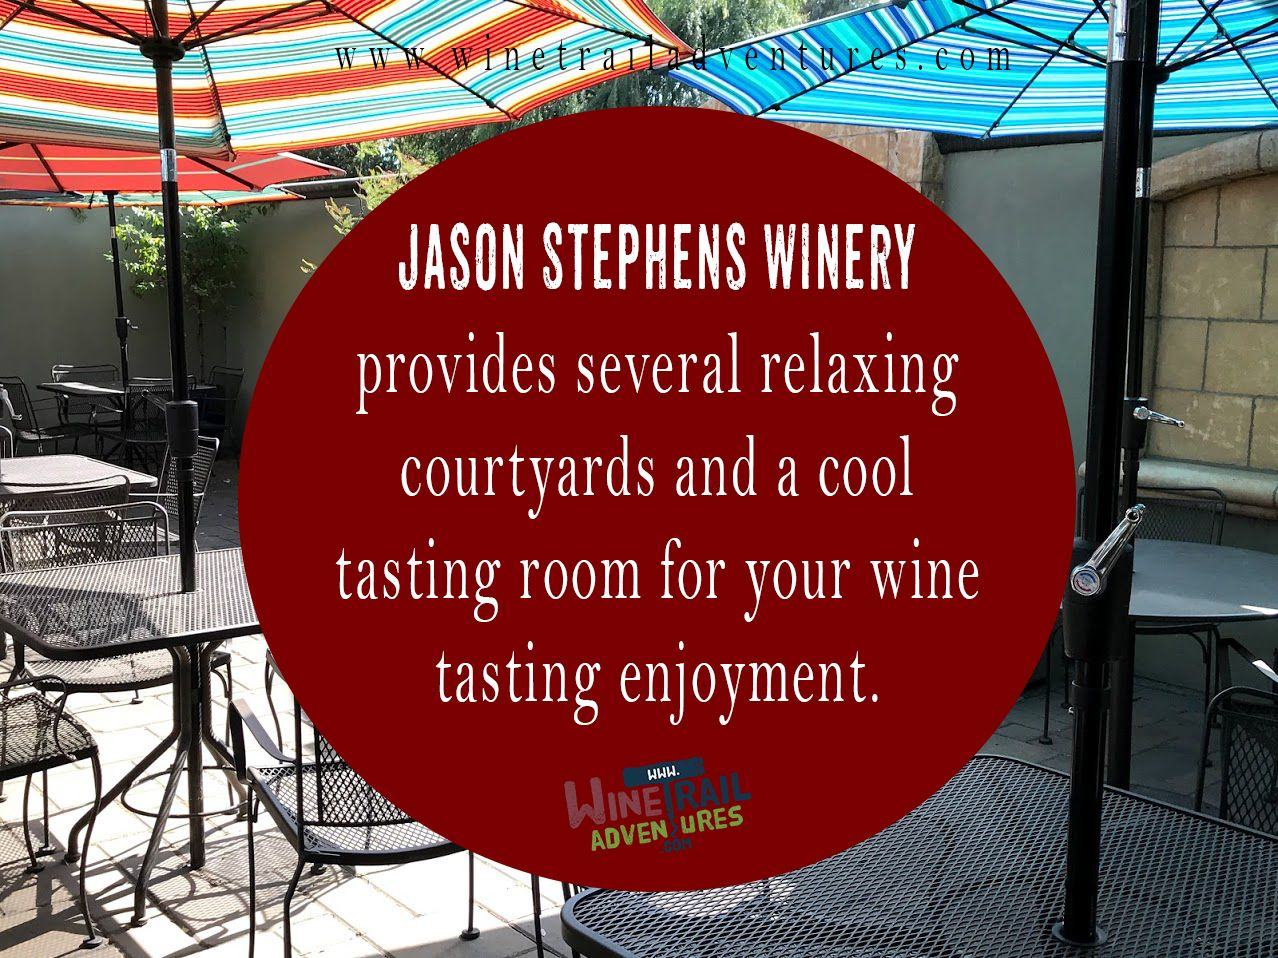 Jason And Janu Goelz Are The Husband And Wife Team Behind Jason Stephens Bring A Fun Approach To Their Limited Releases Of Tradi Winery Wine Tour Wine Tasting